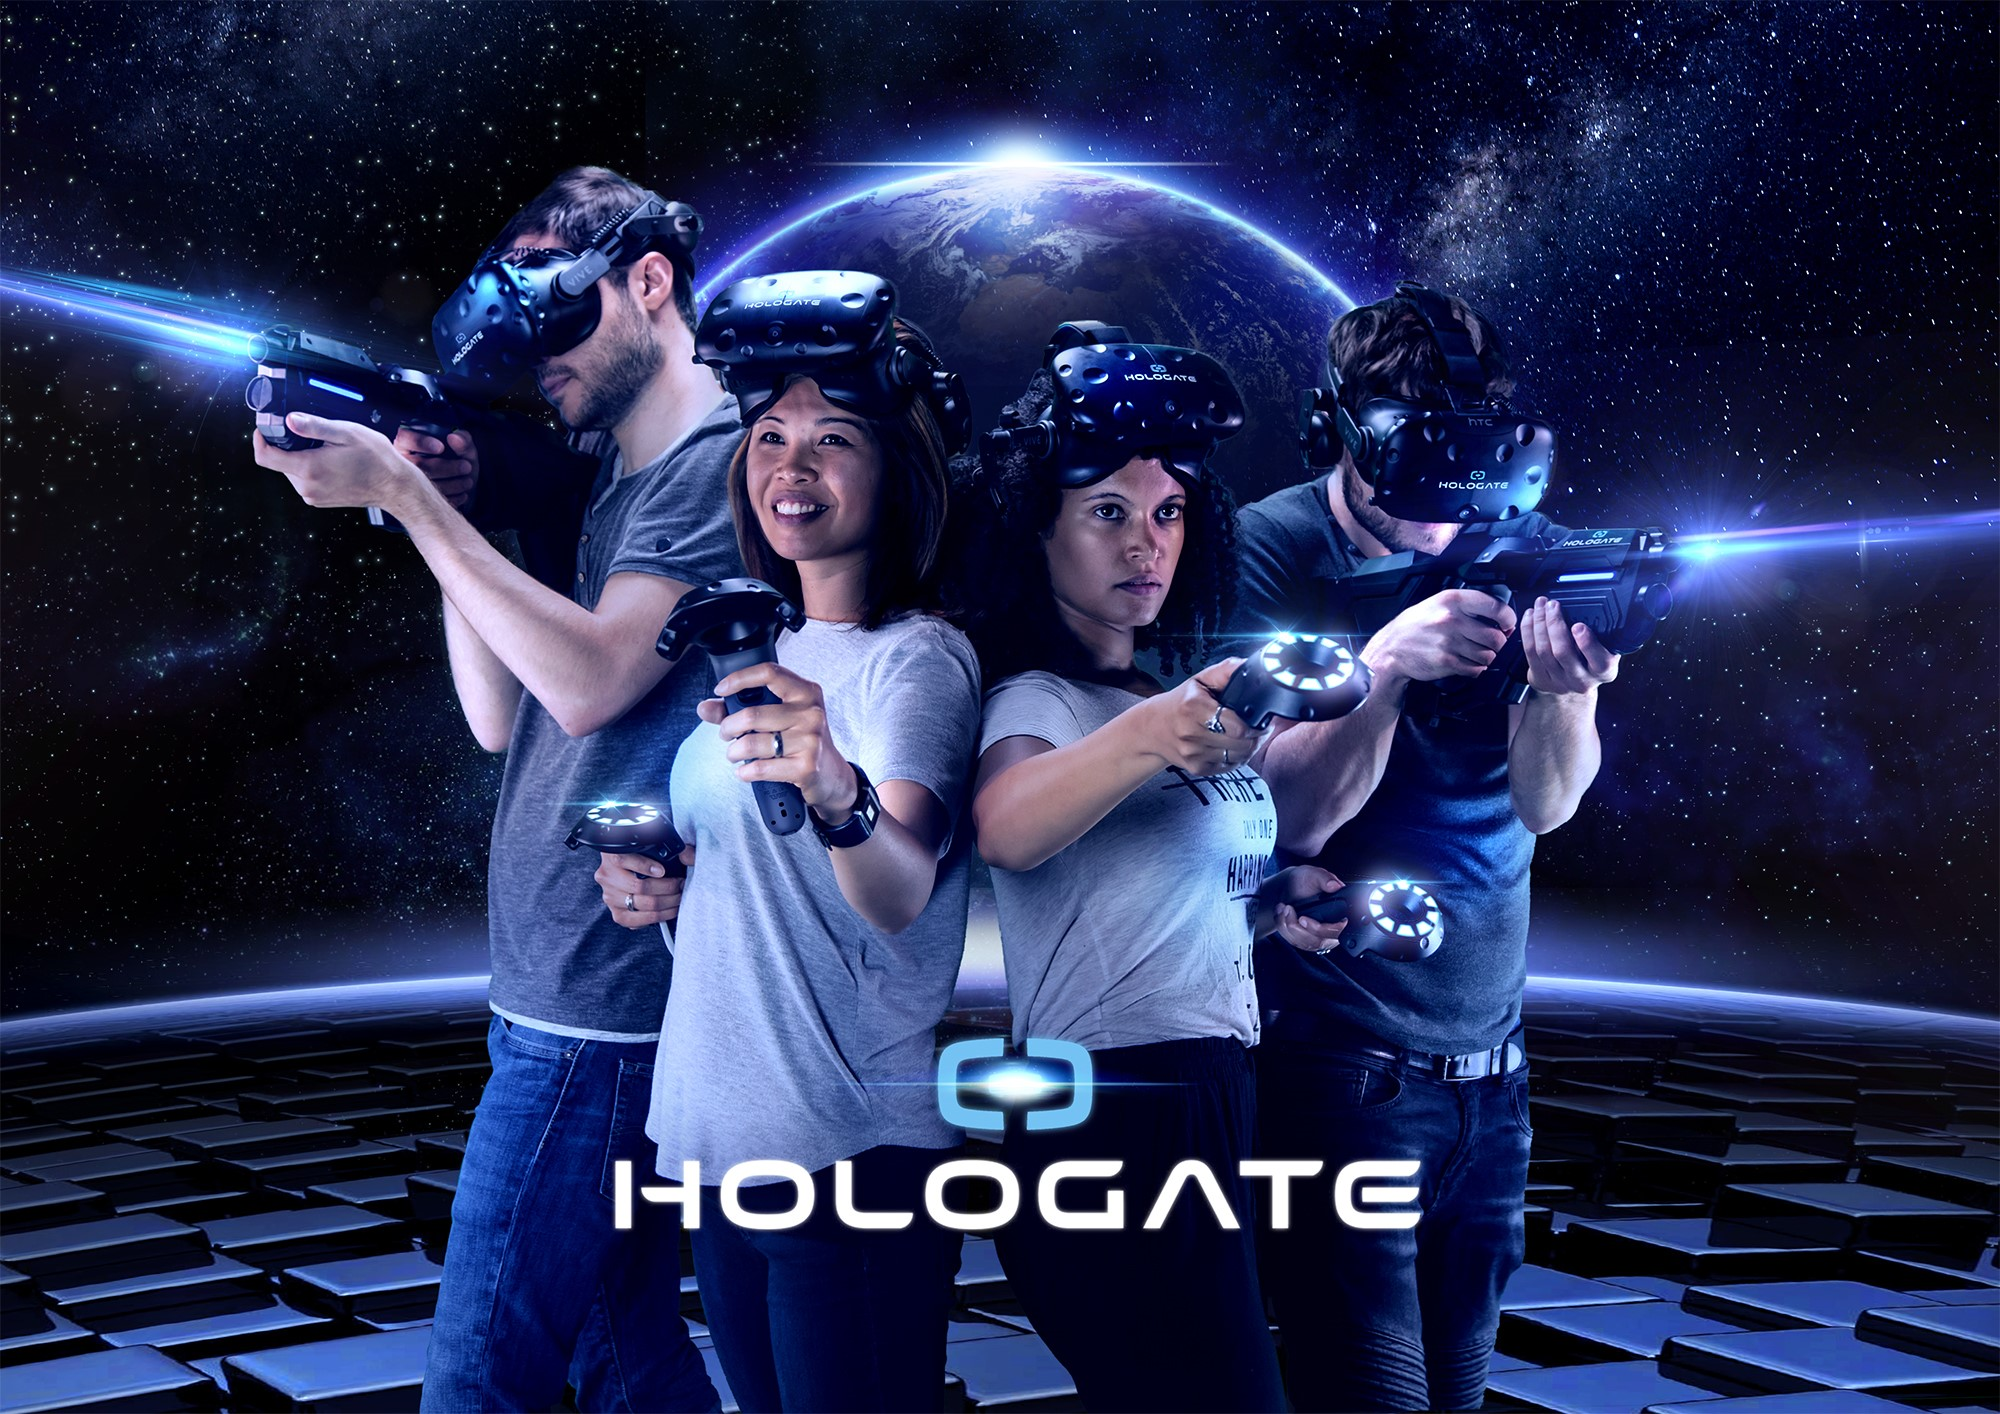 Group Shot with Hologate Logo.jpg